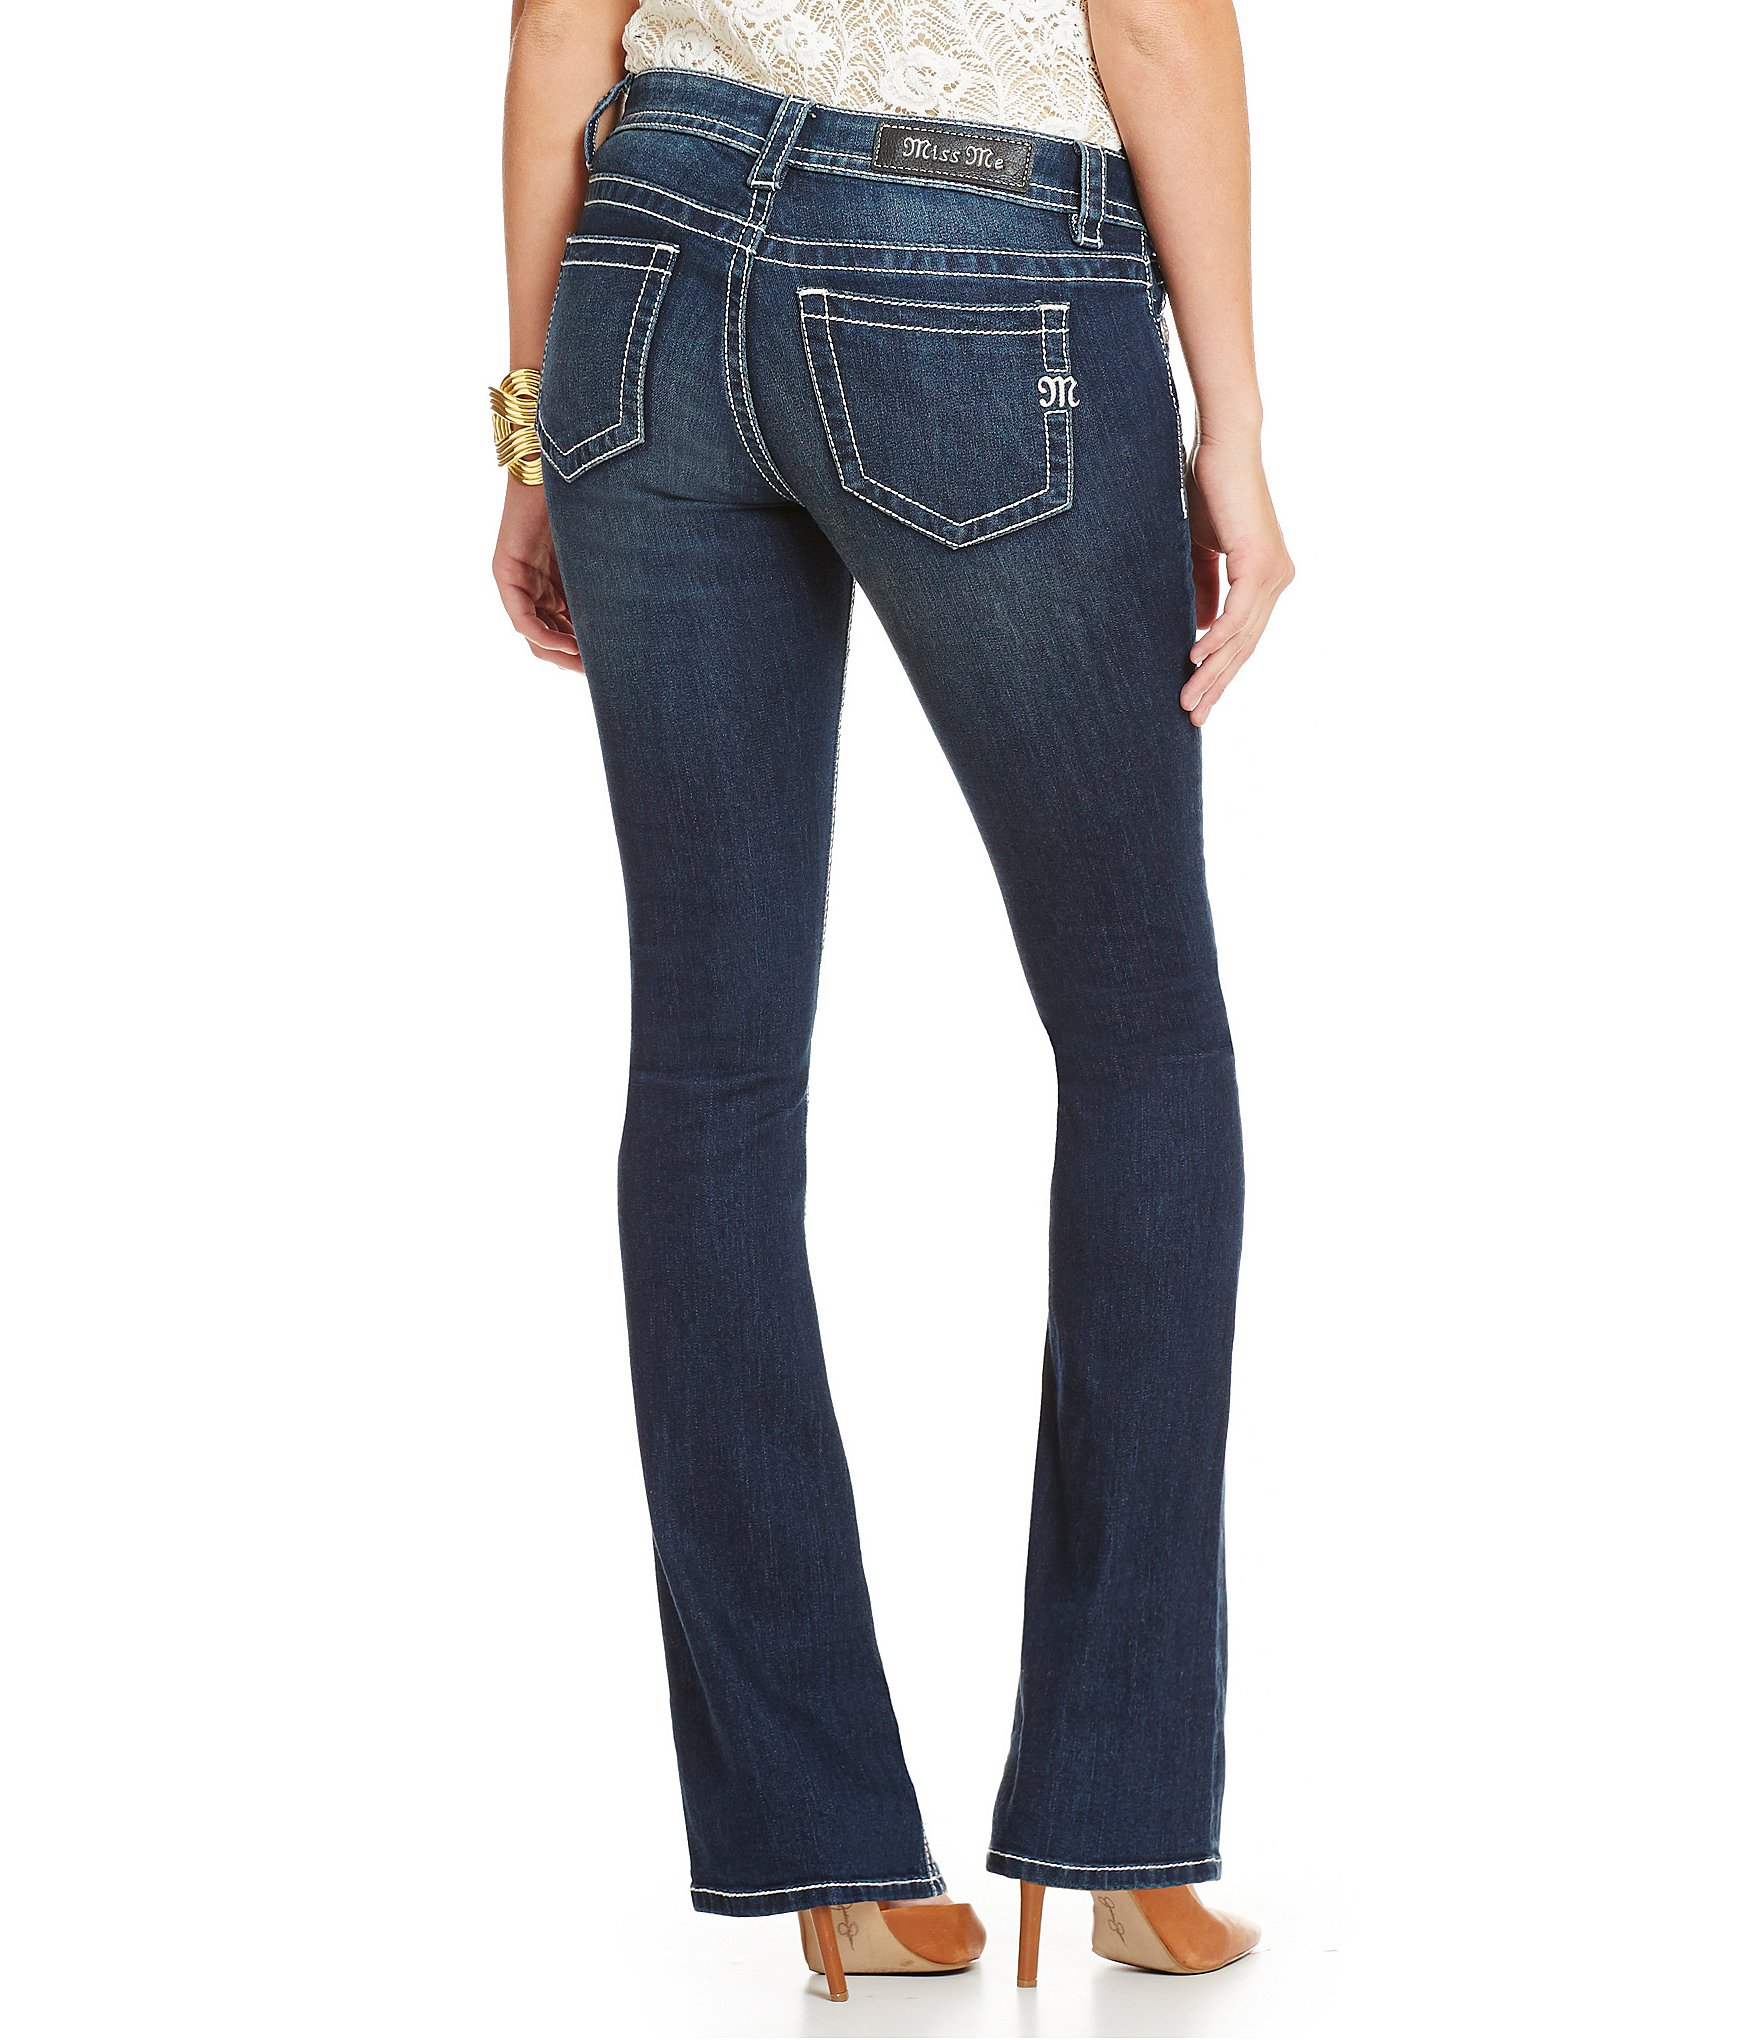 Discover jeans on sale for women at ASOS. Shop the latest collection of jeans for women on sale.